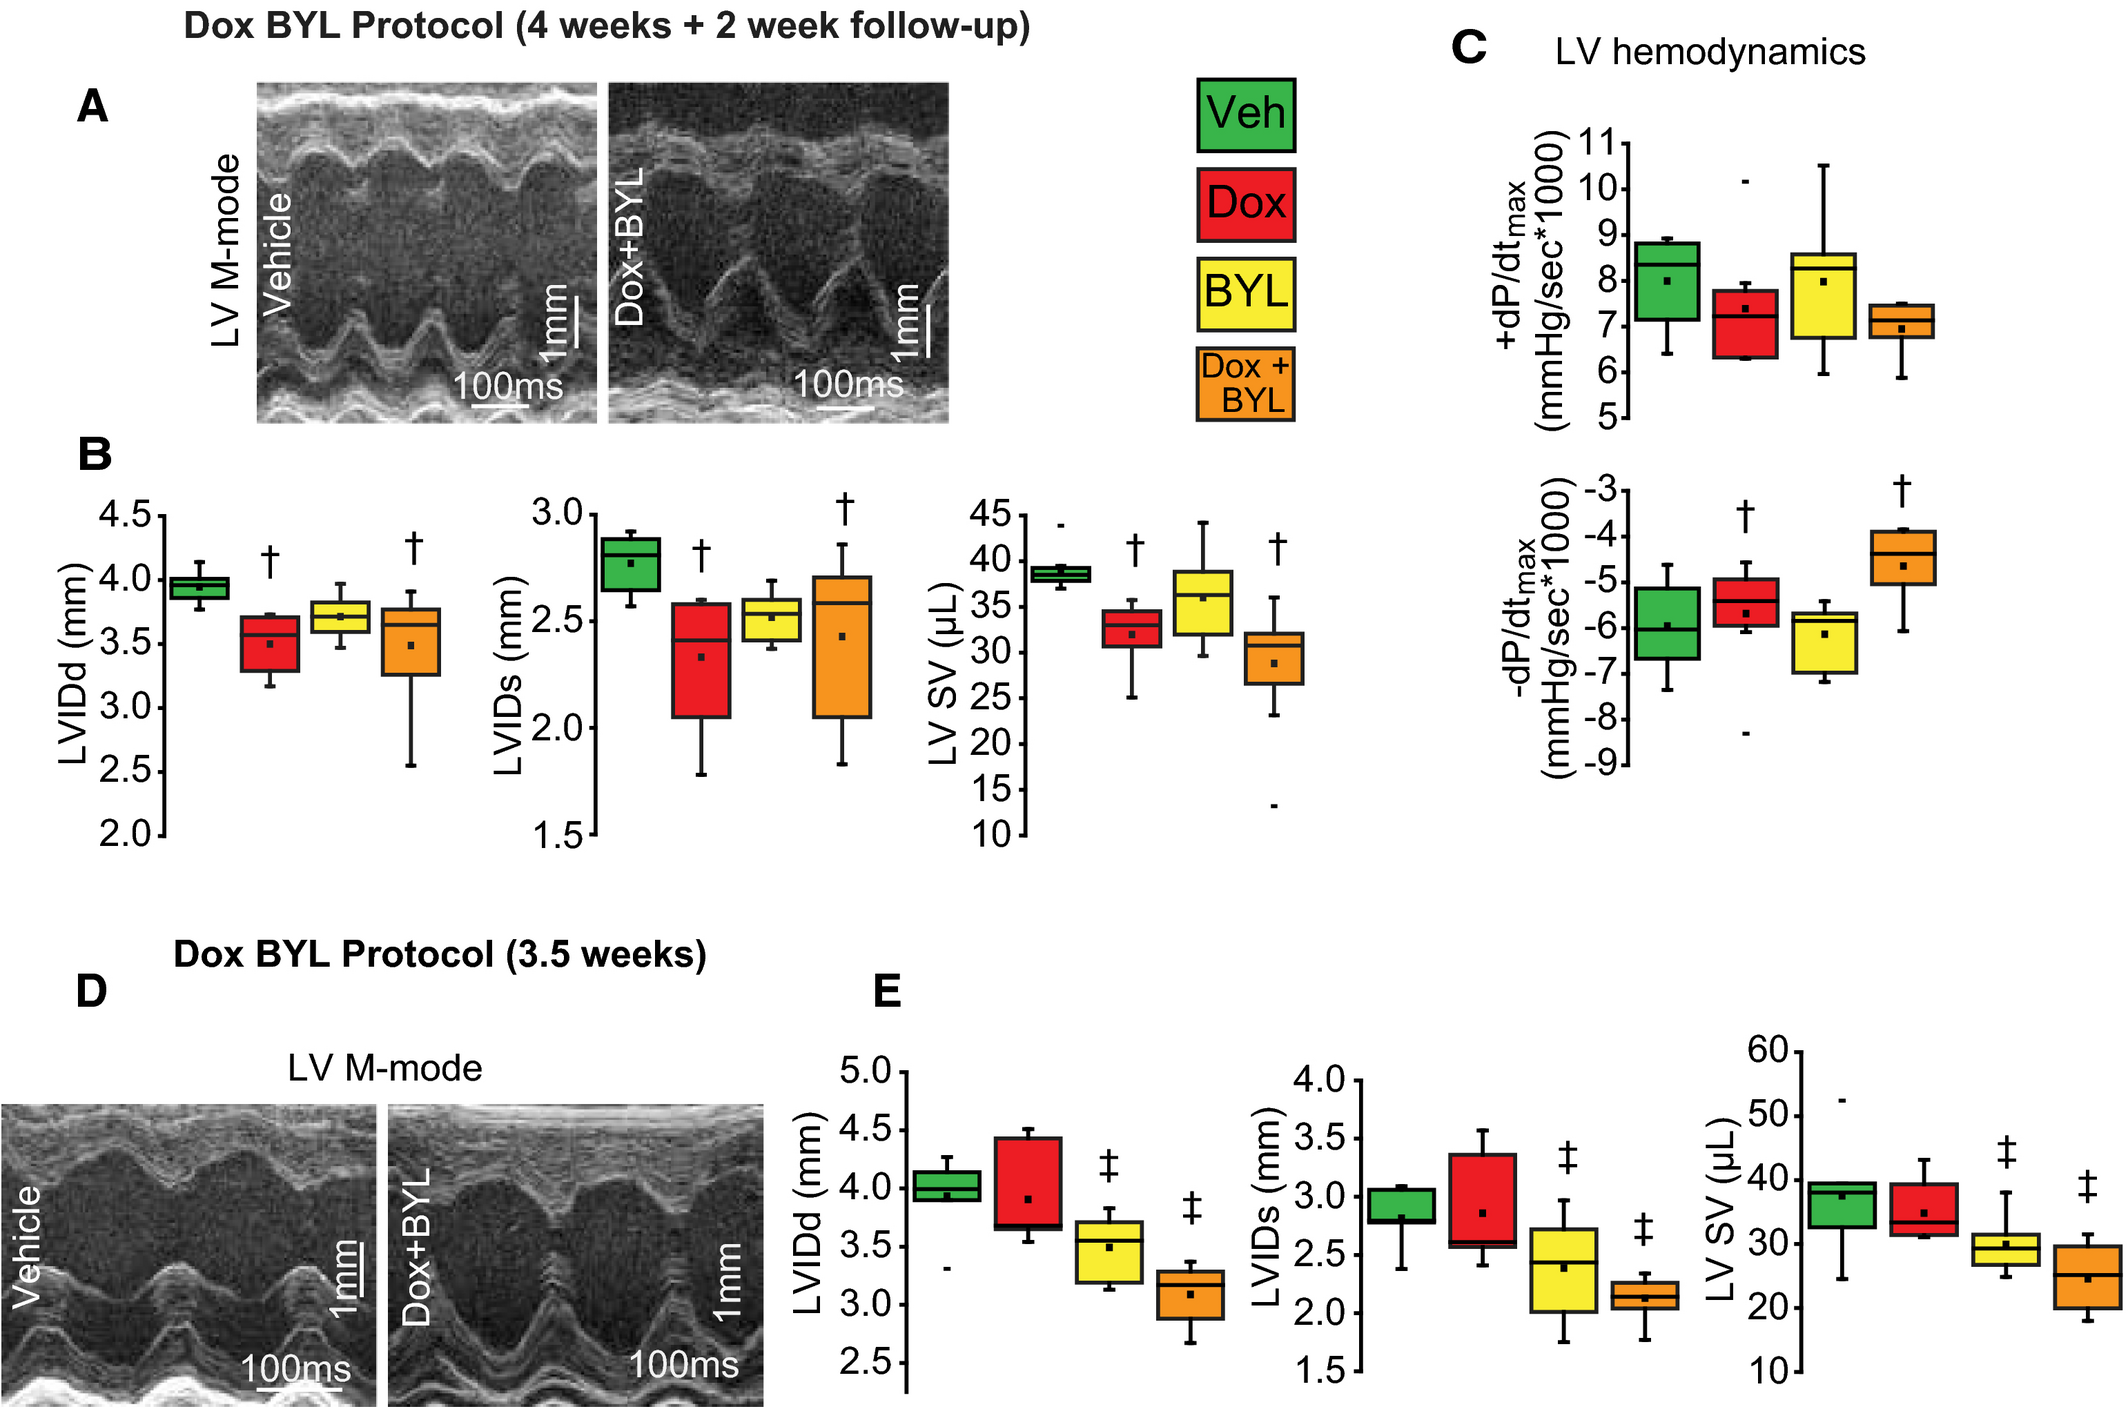 PI3Kα Pathway Inhibition With Doxorubicin Treatment Results in